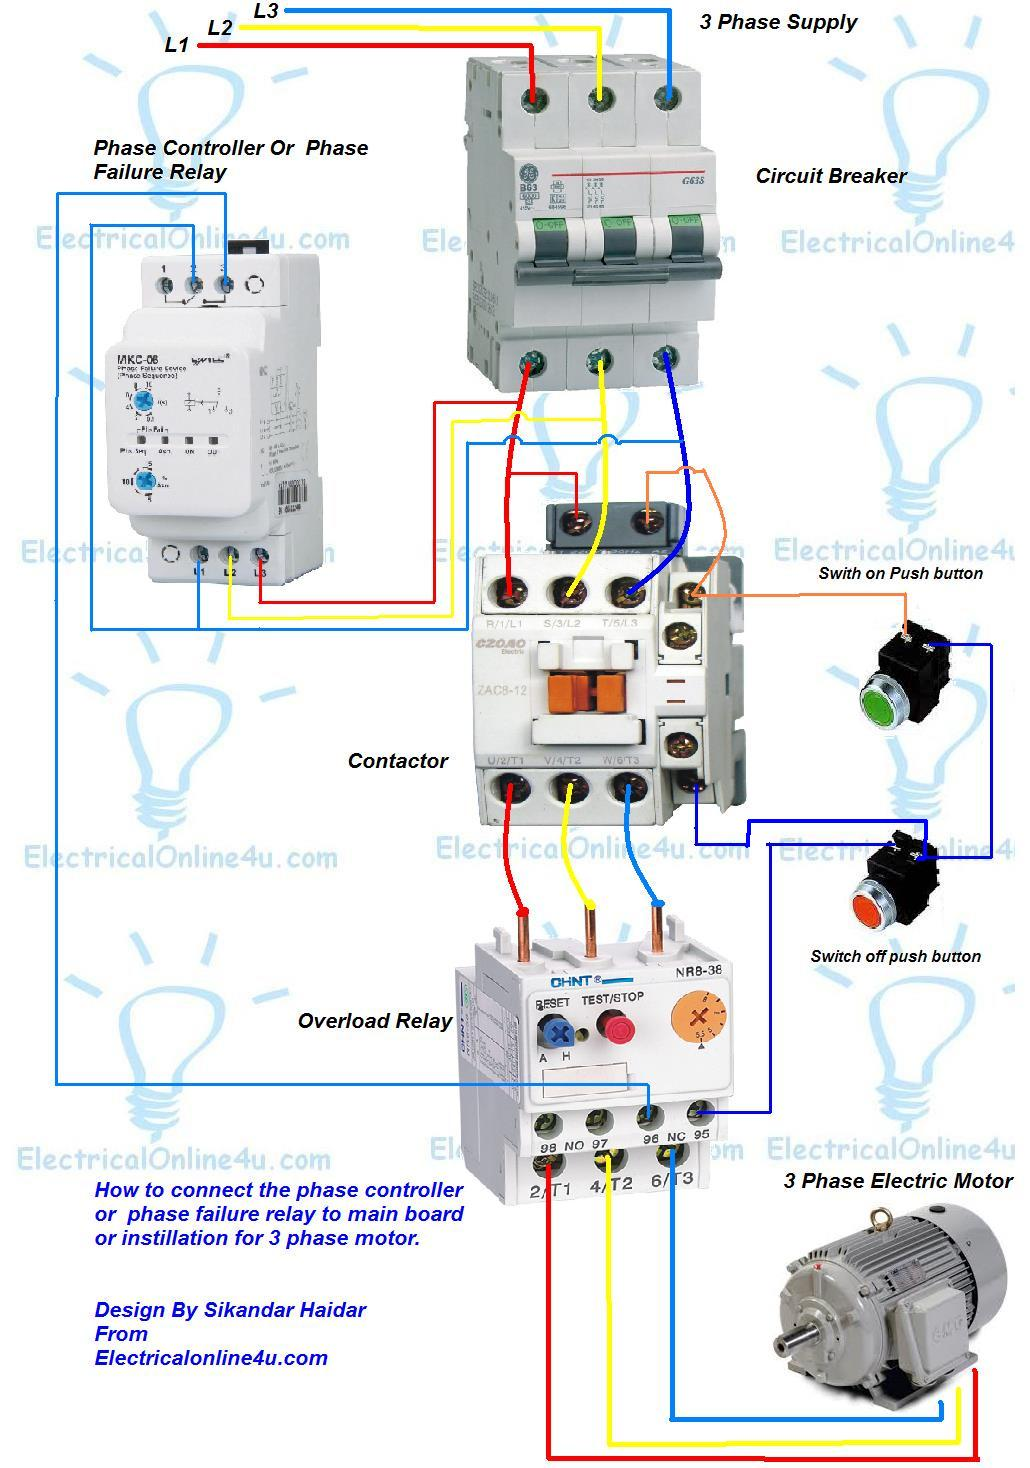 Phase%2Bfailure%2Brelay%2B %2Bphase%2Bcontroller%2Binstilaion%2Bin%2B3%2Bphase%2BMain%2Bboard%2Bor%2Bfor%2B3%2Bphase%2Bmotor contactor wiring diagram relay switch wiring diagram \u2022 wiring  at edmiracle.co